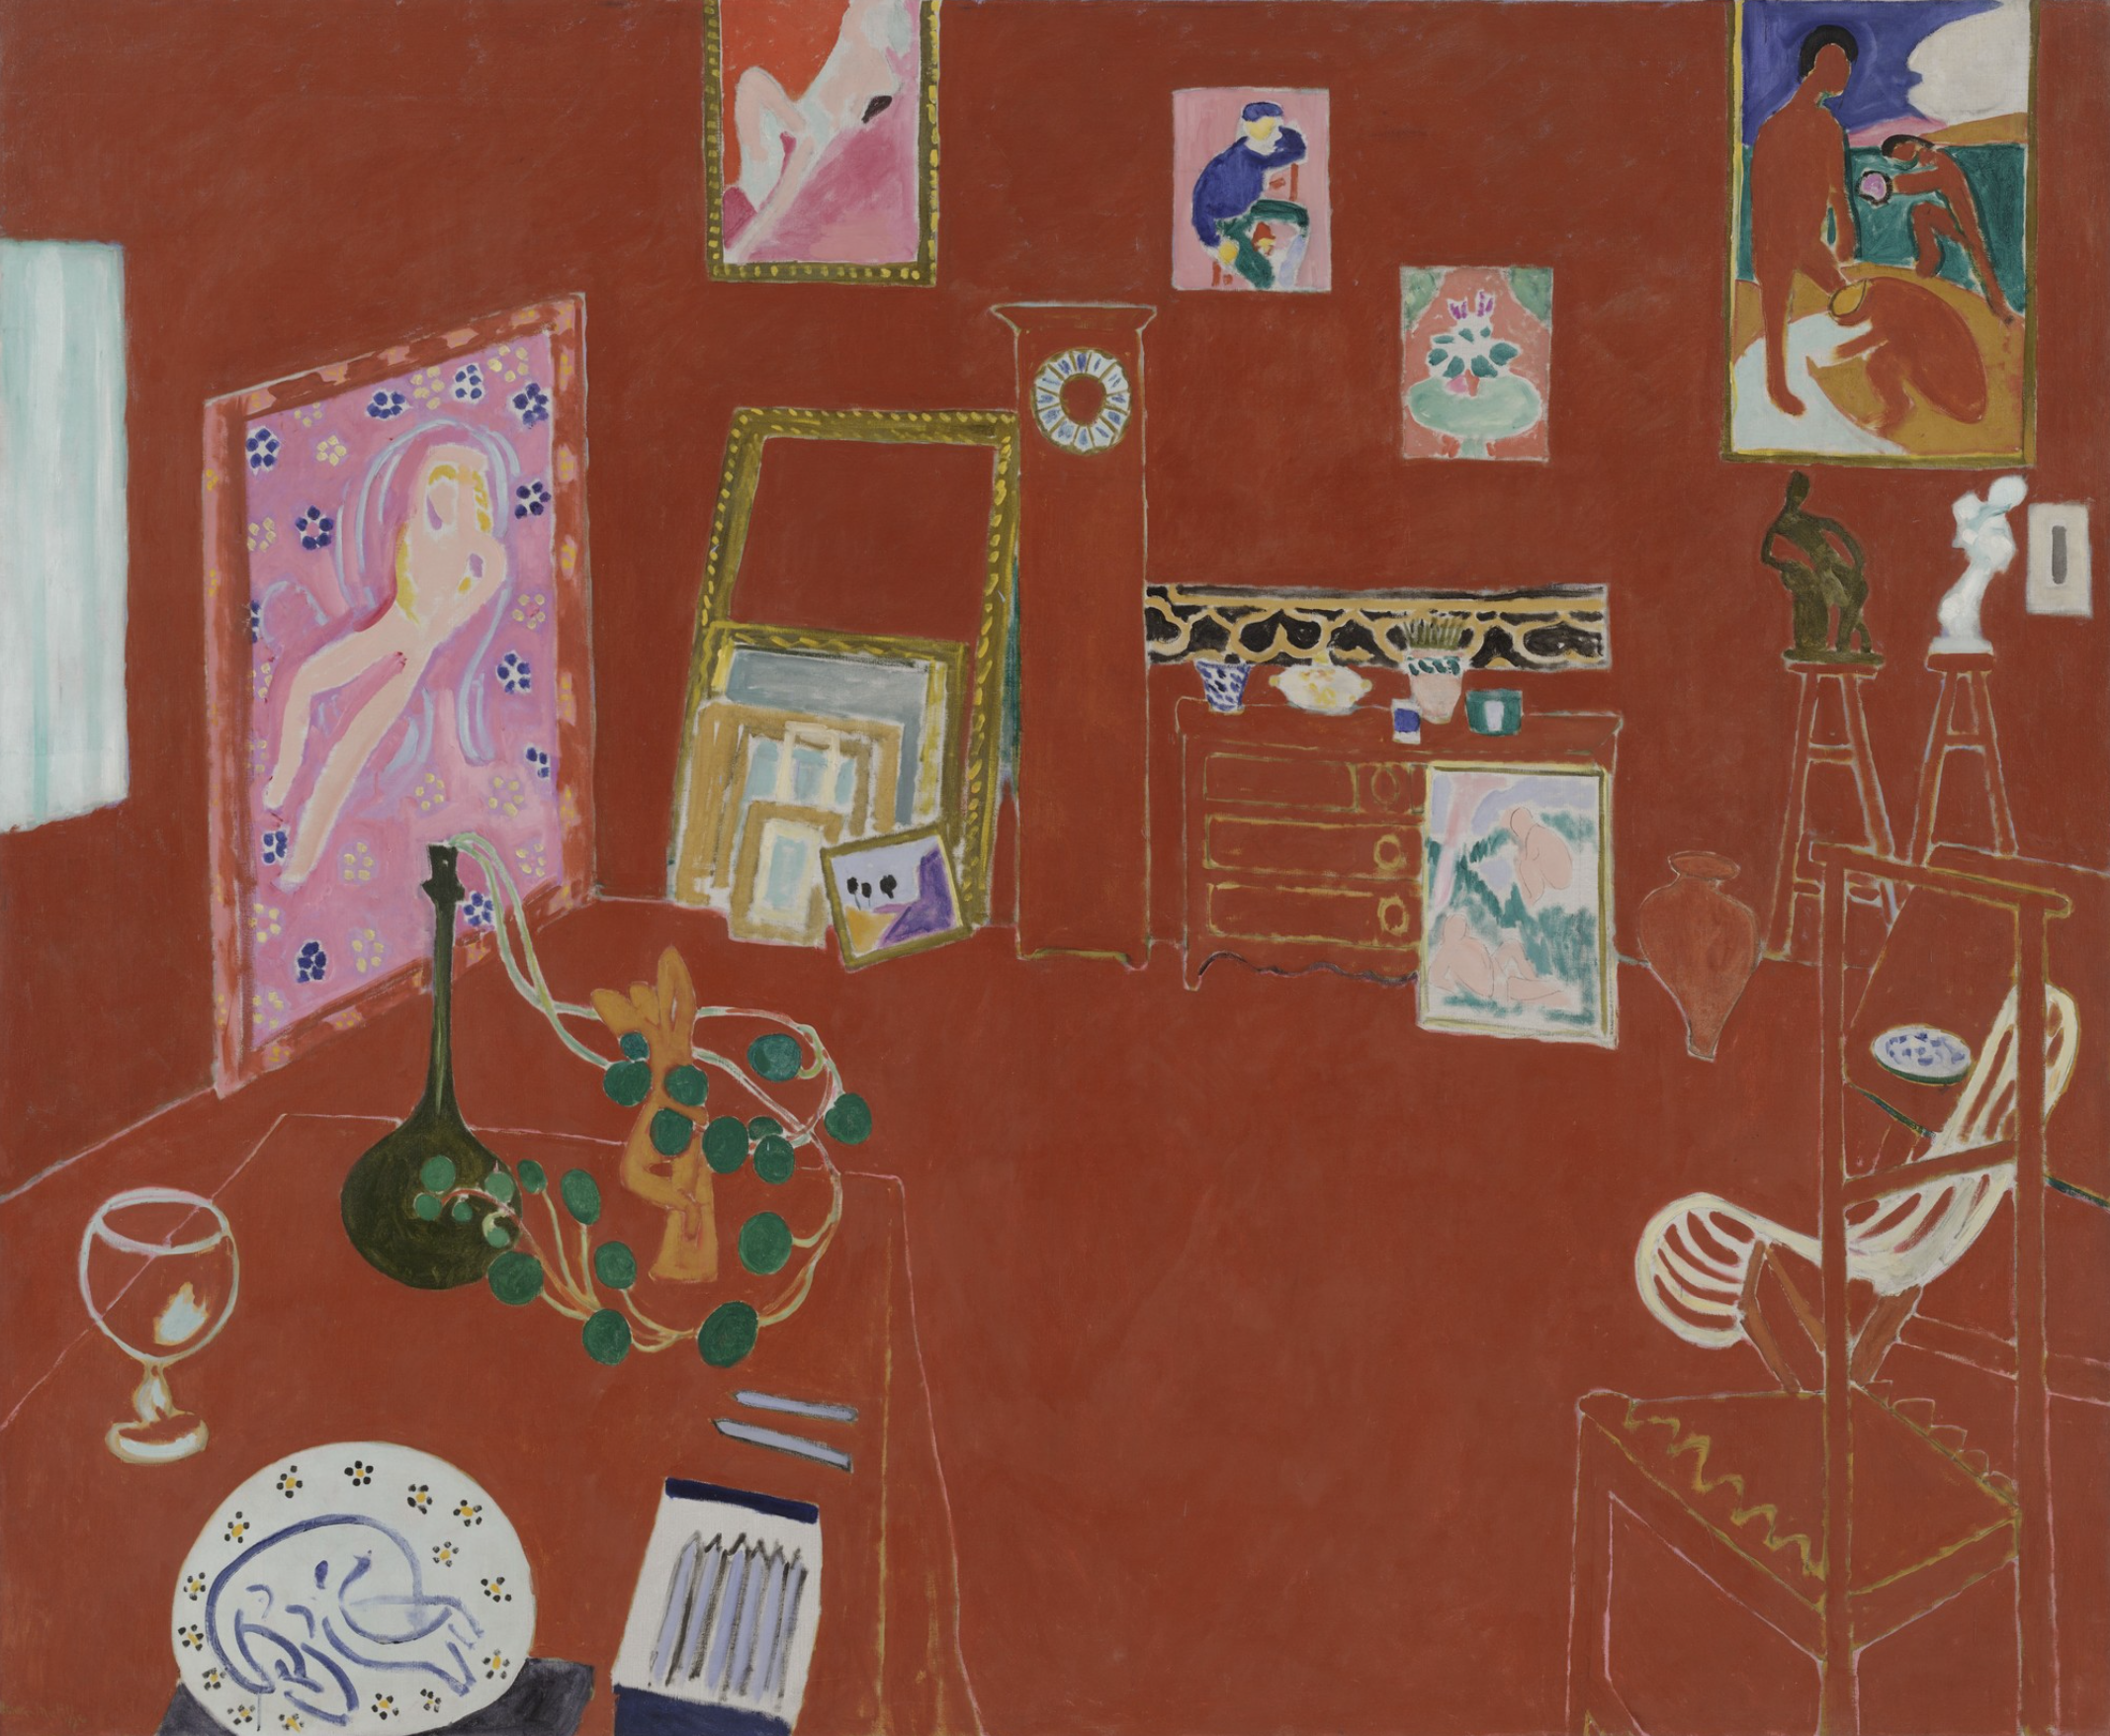 Henri Matisse. The Red Studio. Issy-les-Moulineaux, fall 1911 | MoMA